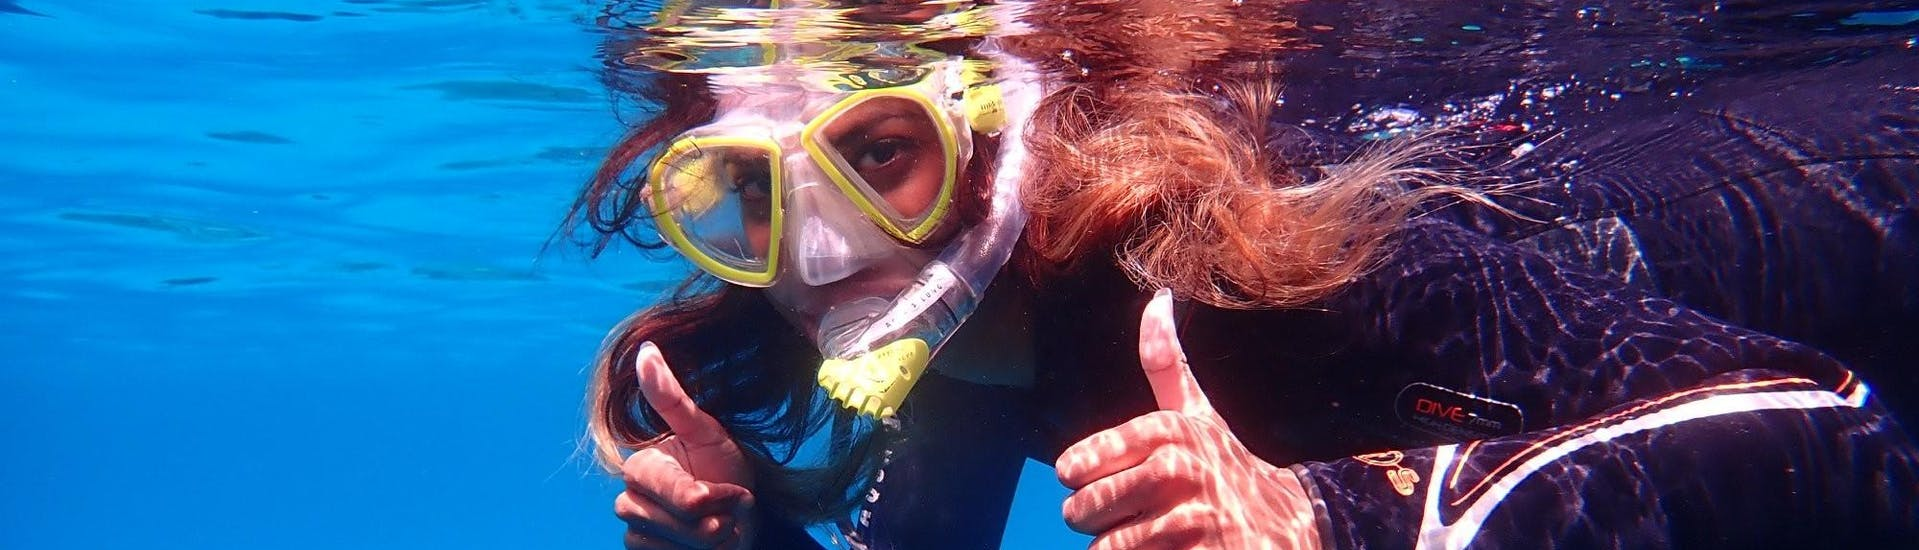 During the Snorkeling Trip to Cala Delta Nature Reserve with Diving and Adventure Mallorca, a young woman is snorkeling in the crystal clear water.